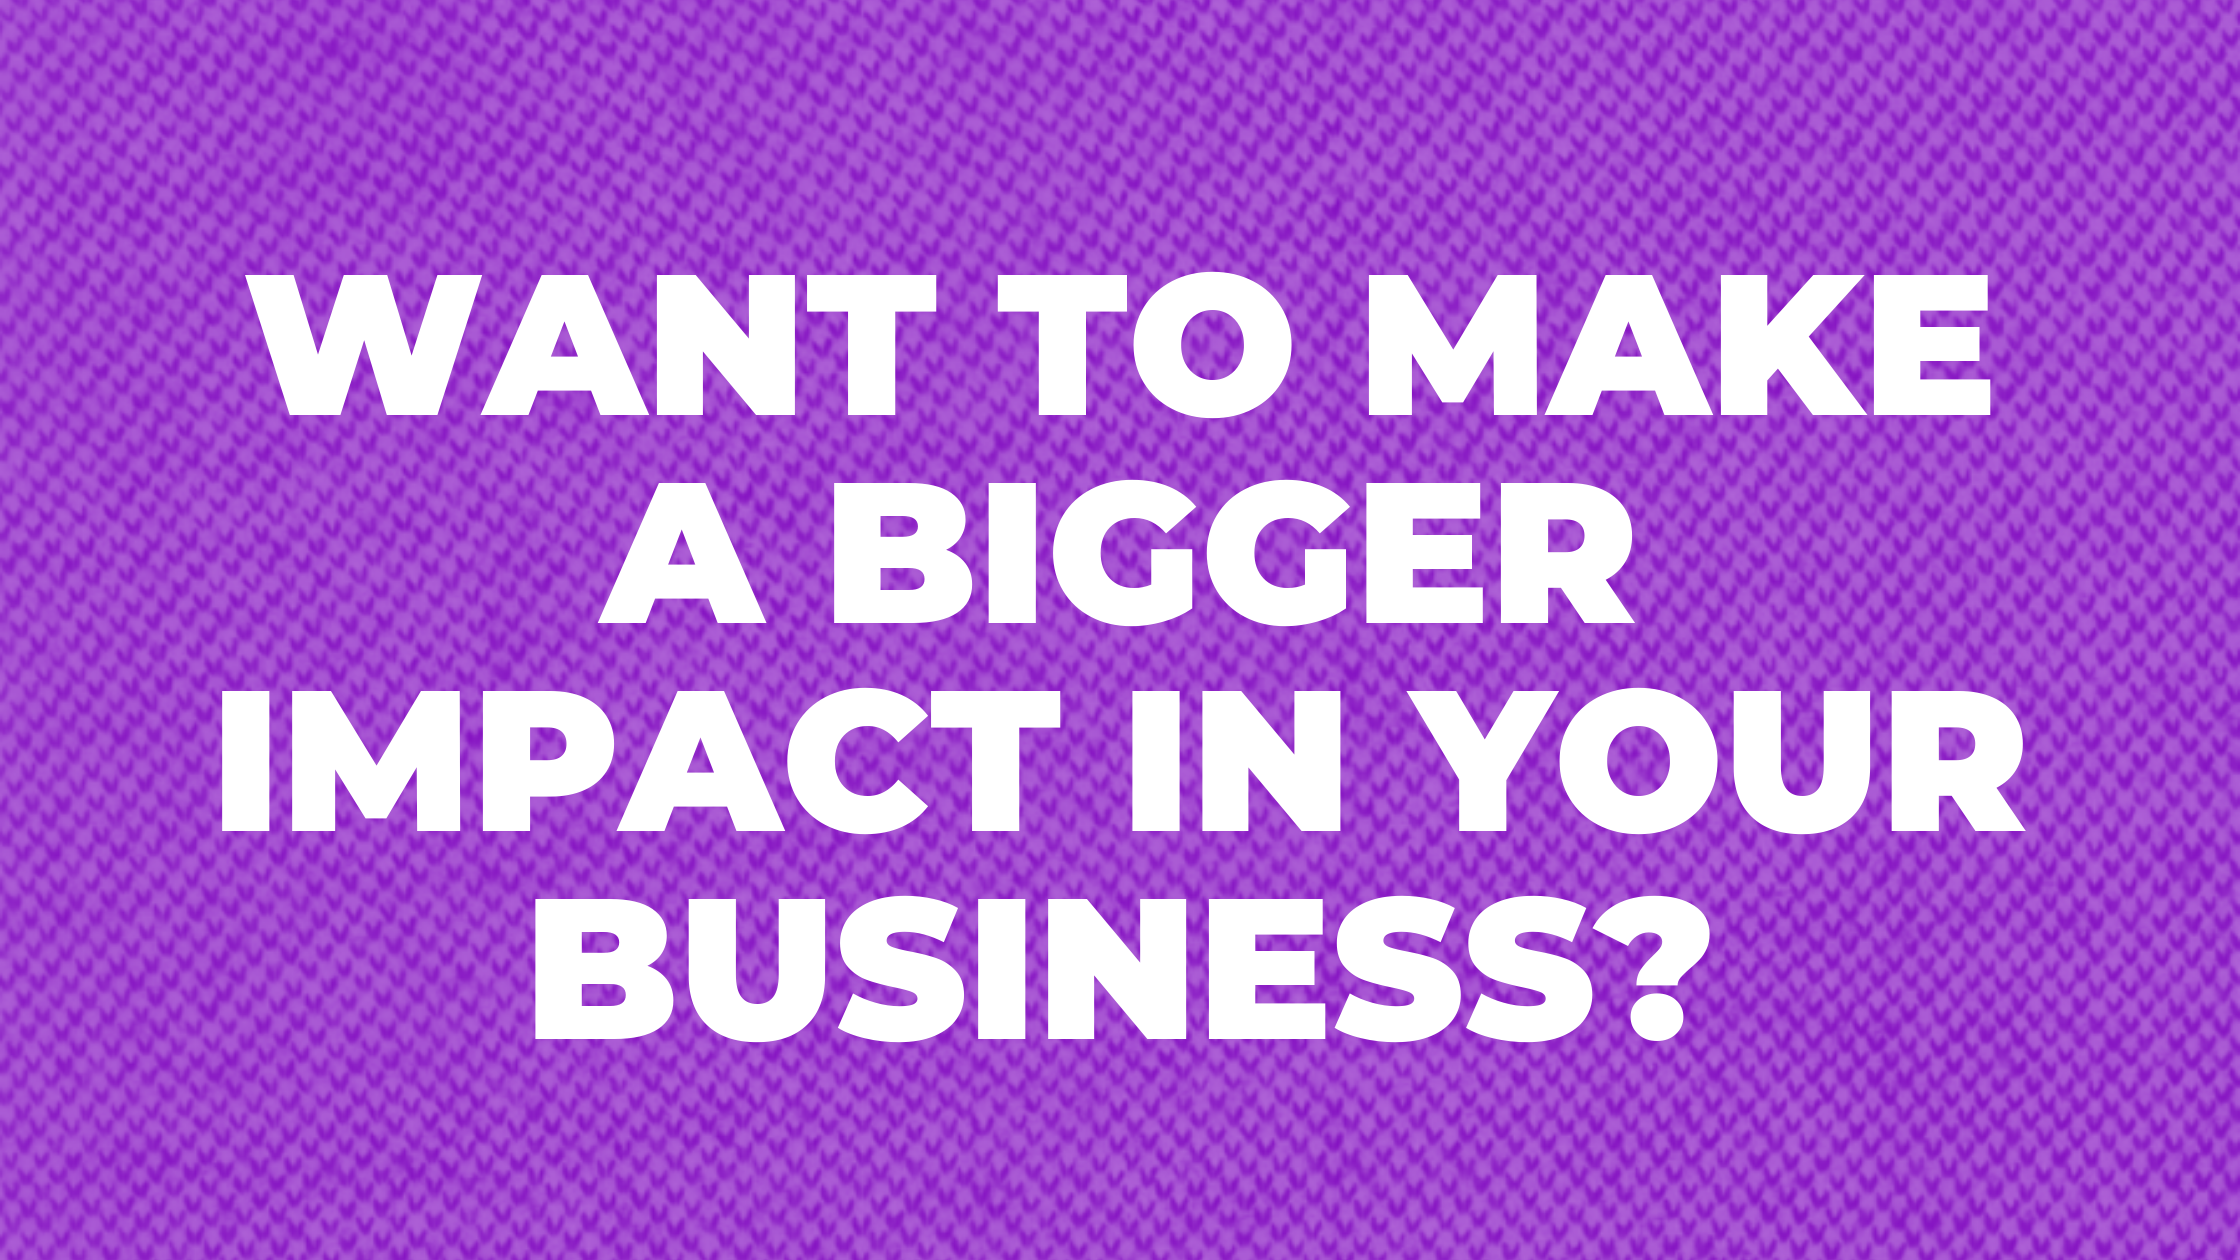 Make a bigger impact in your business